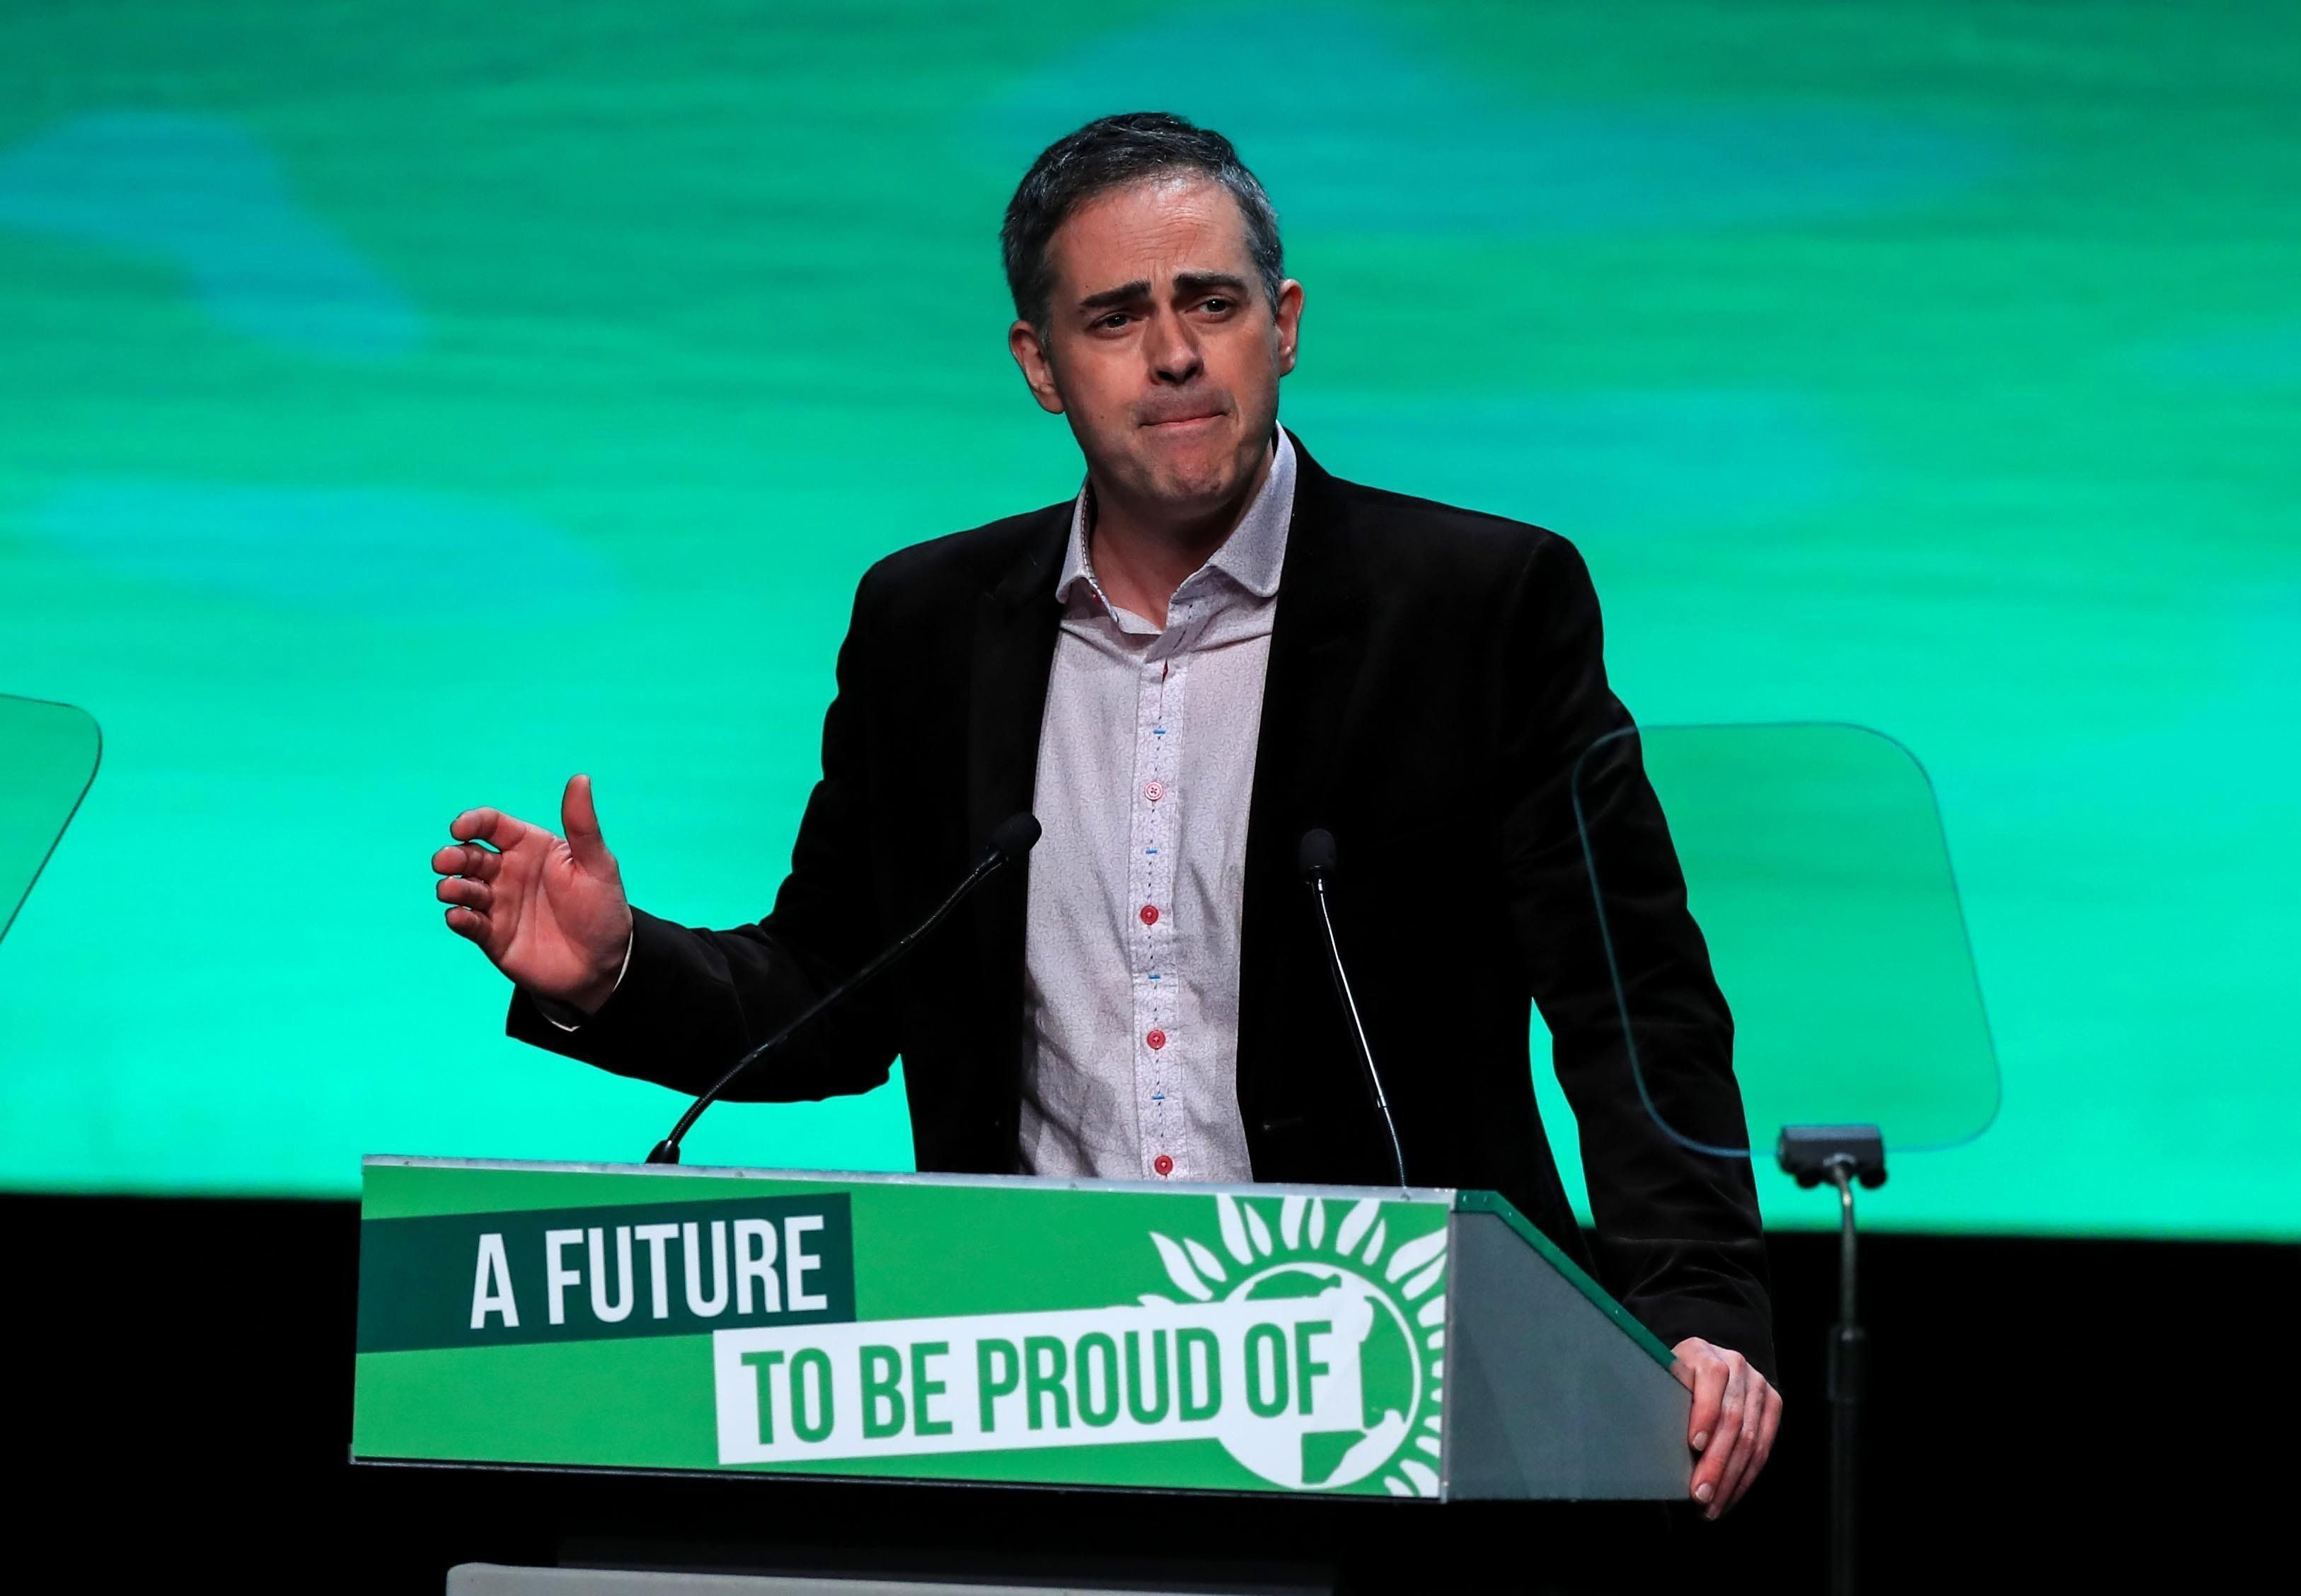 Green Party Leader Jonathan Bartley Says Air Pollution Is Becoming 'Most Urgent Global Crisis Of Our